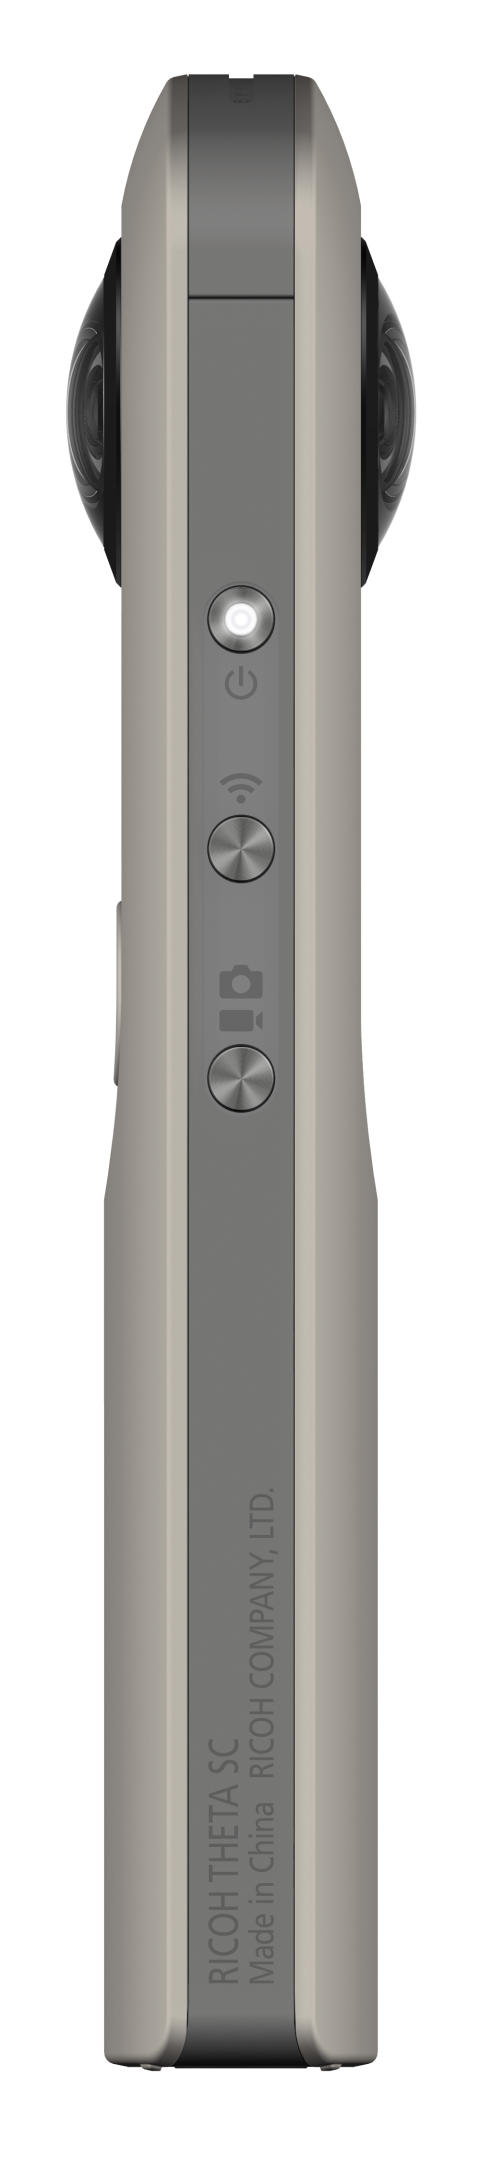 Ricoh Theta SC side 2